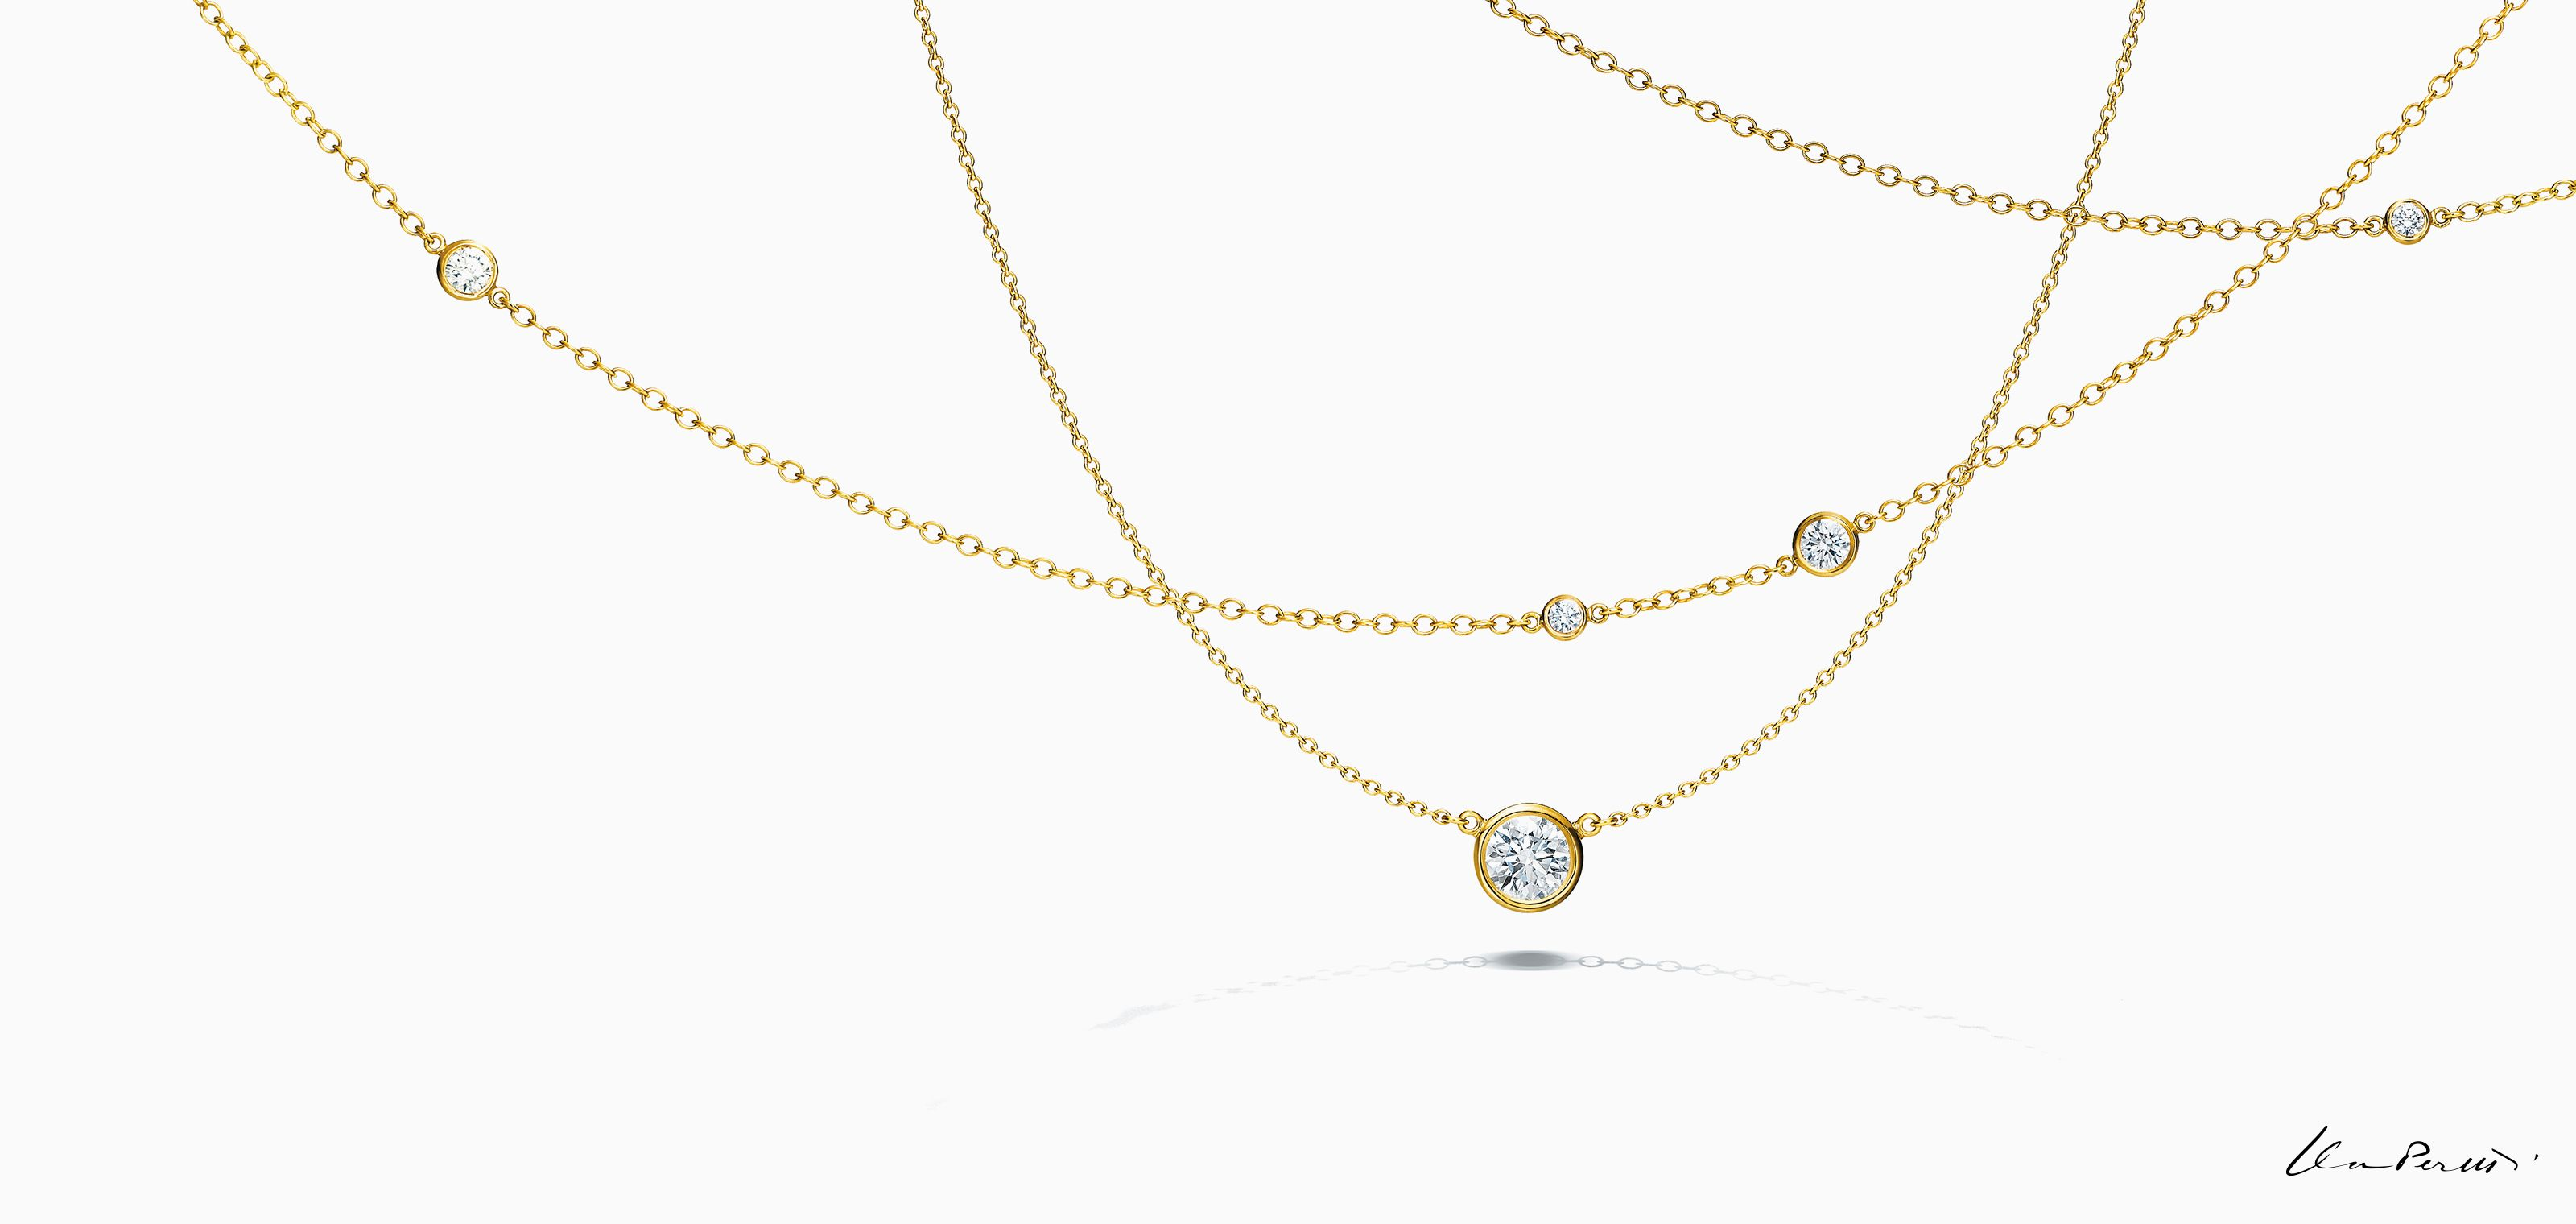 d2d954d87 Elsa Peretti® Jewelry | Tiffany & Co.